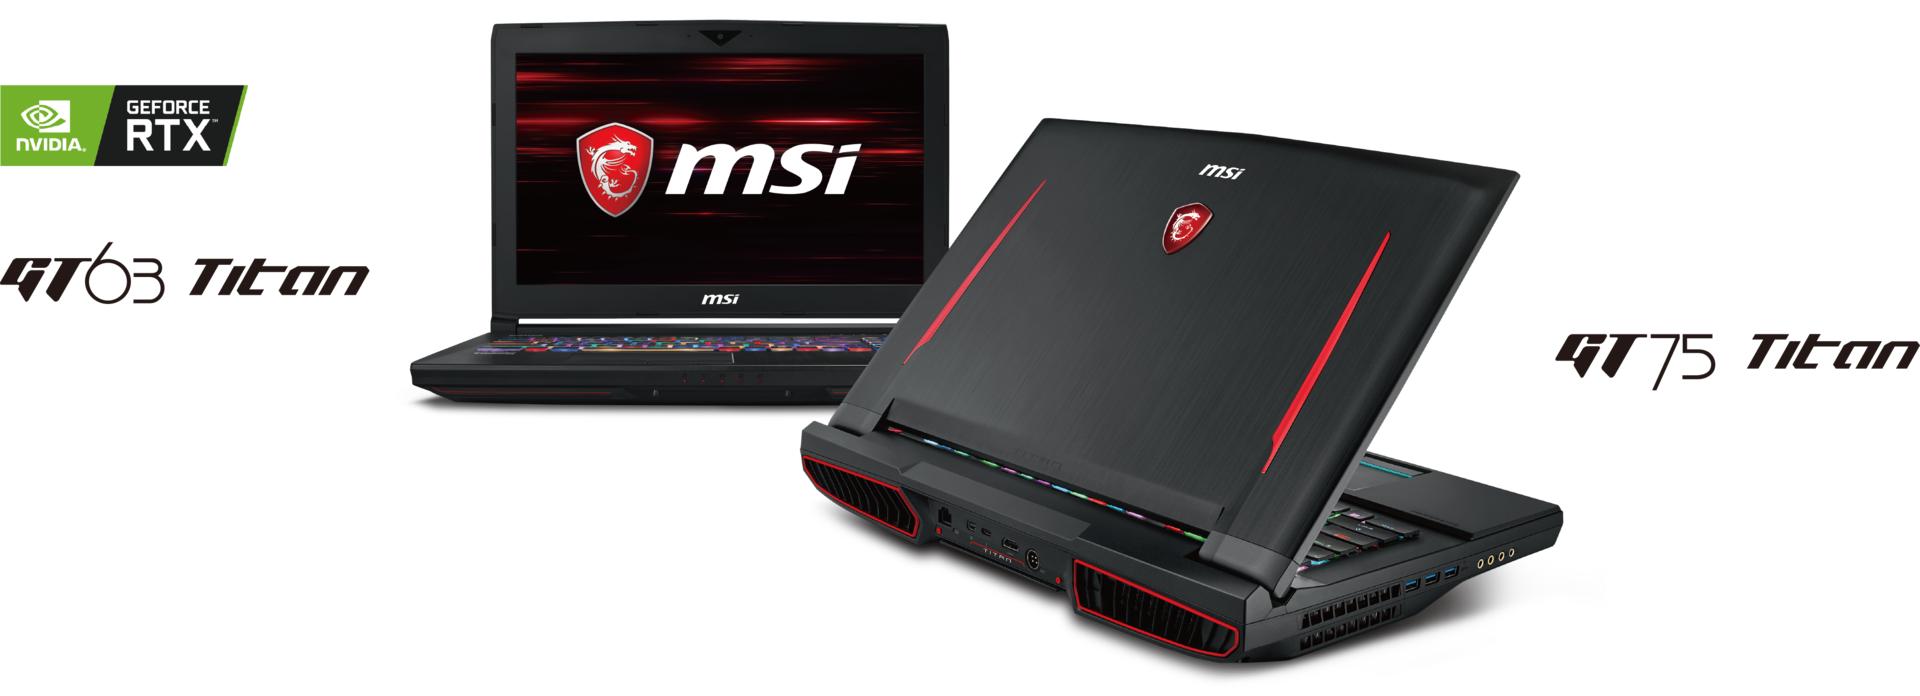 MSI raises its gaming laptops to a new level with NVIDIA GeForce RTX